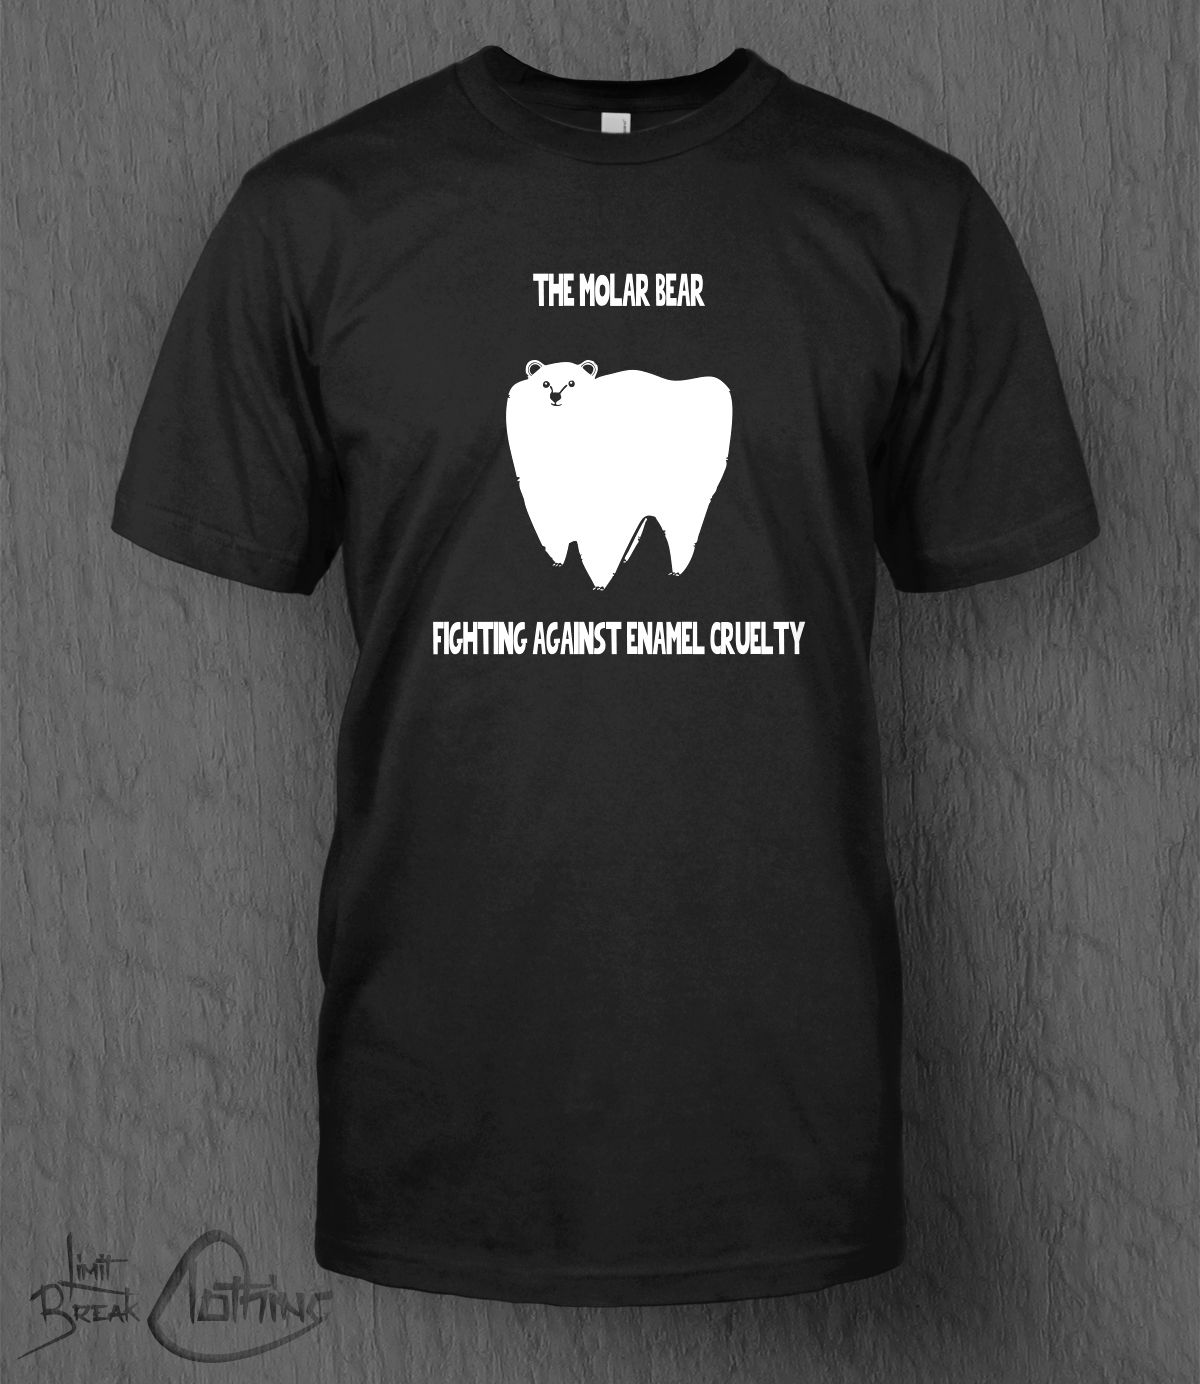 The Molar Bear T Shirt Funny Novelty MEN 39 S Polar Bear Animals Father 39 s Day Harajuku Tops Fashion Classic Unique free shipping in T Shirts from Men 39 s Clothing